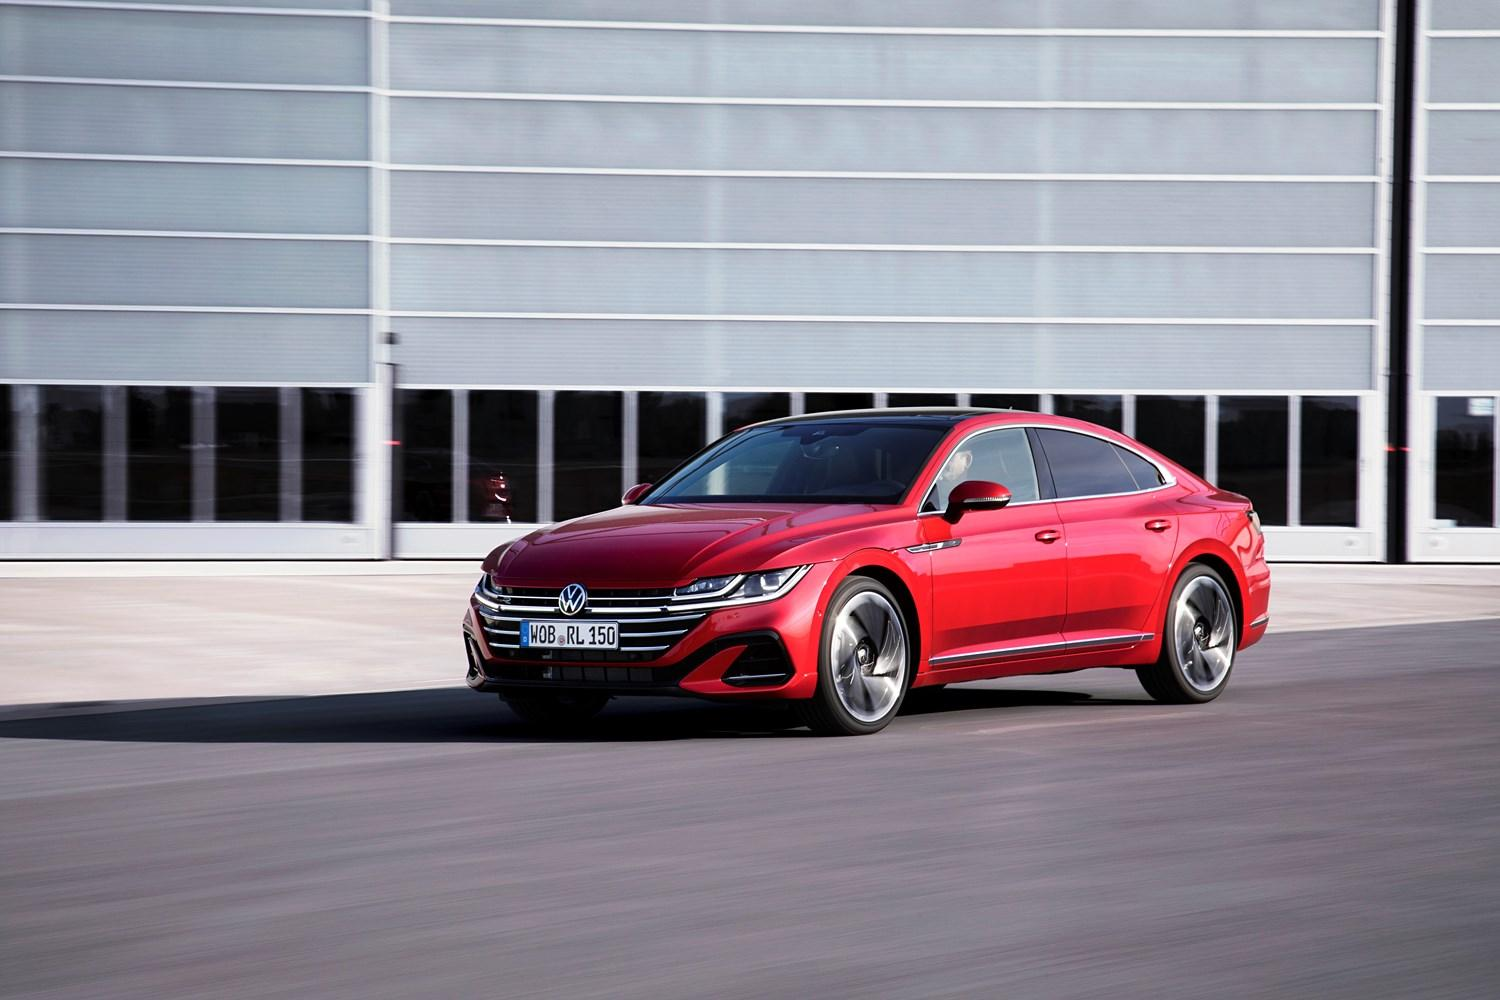 Red arteon in front of office style building